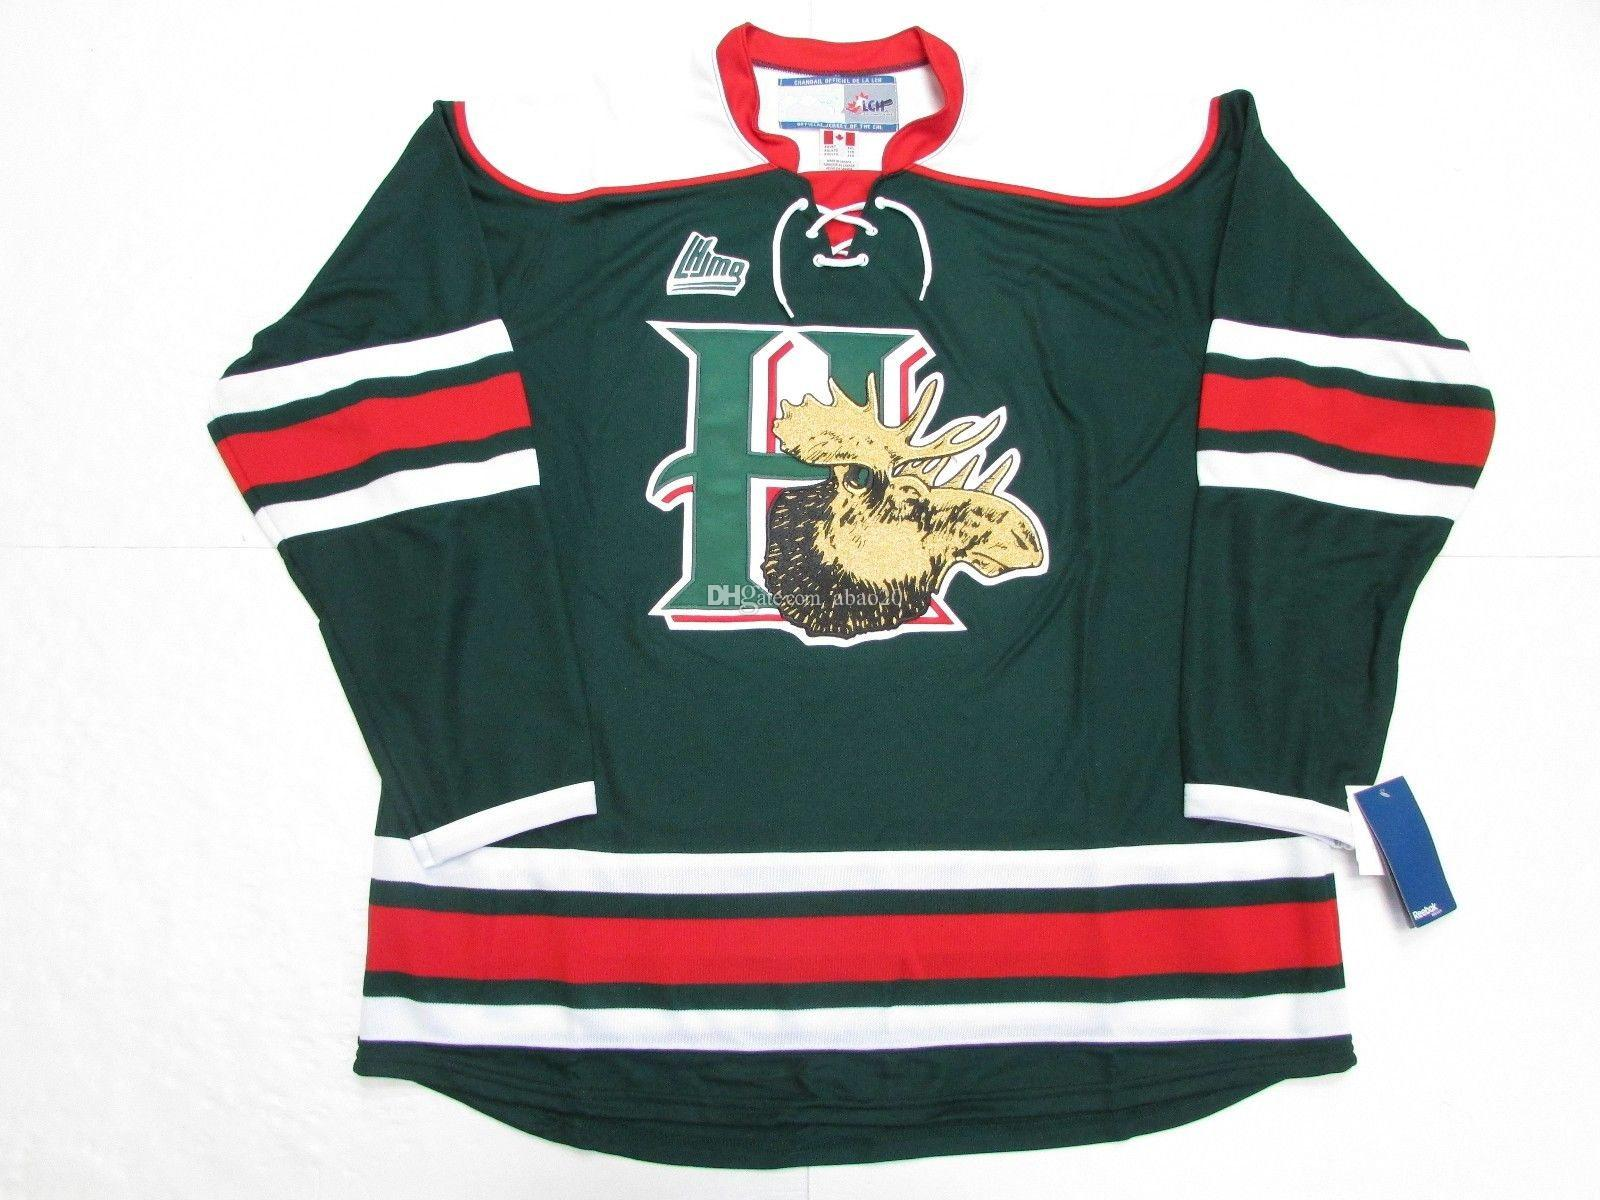 abb241dec 2019 Halifax Mooseheads Retro Ice Hockey Jerseys Green Red Mens Stitched  Custom Any Number And Name From Abao20